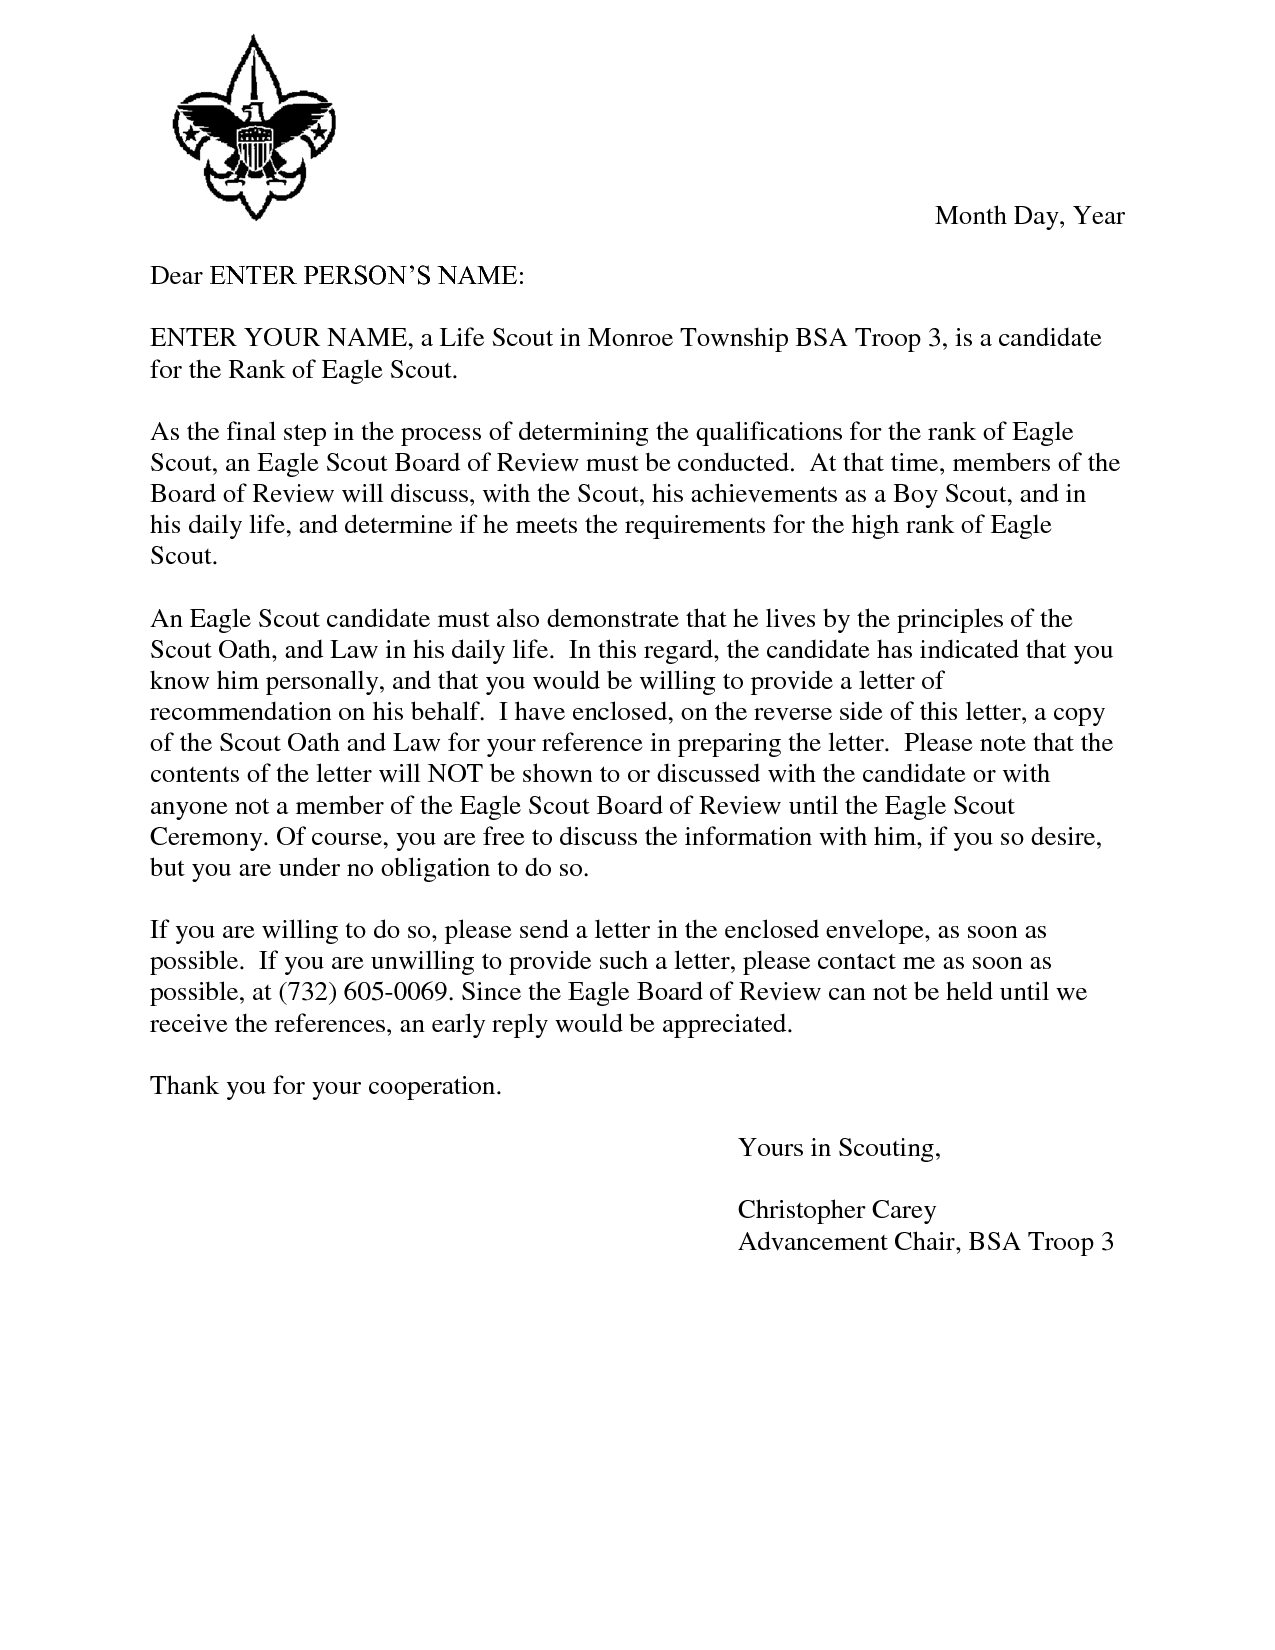 boy scout donation letter template